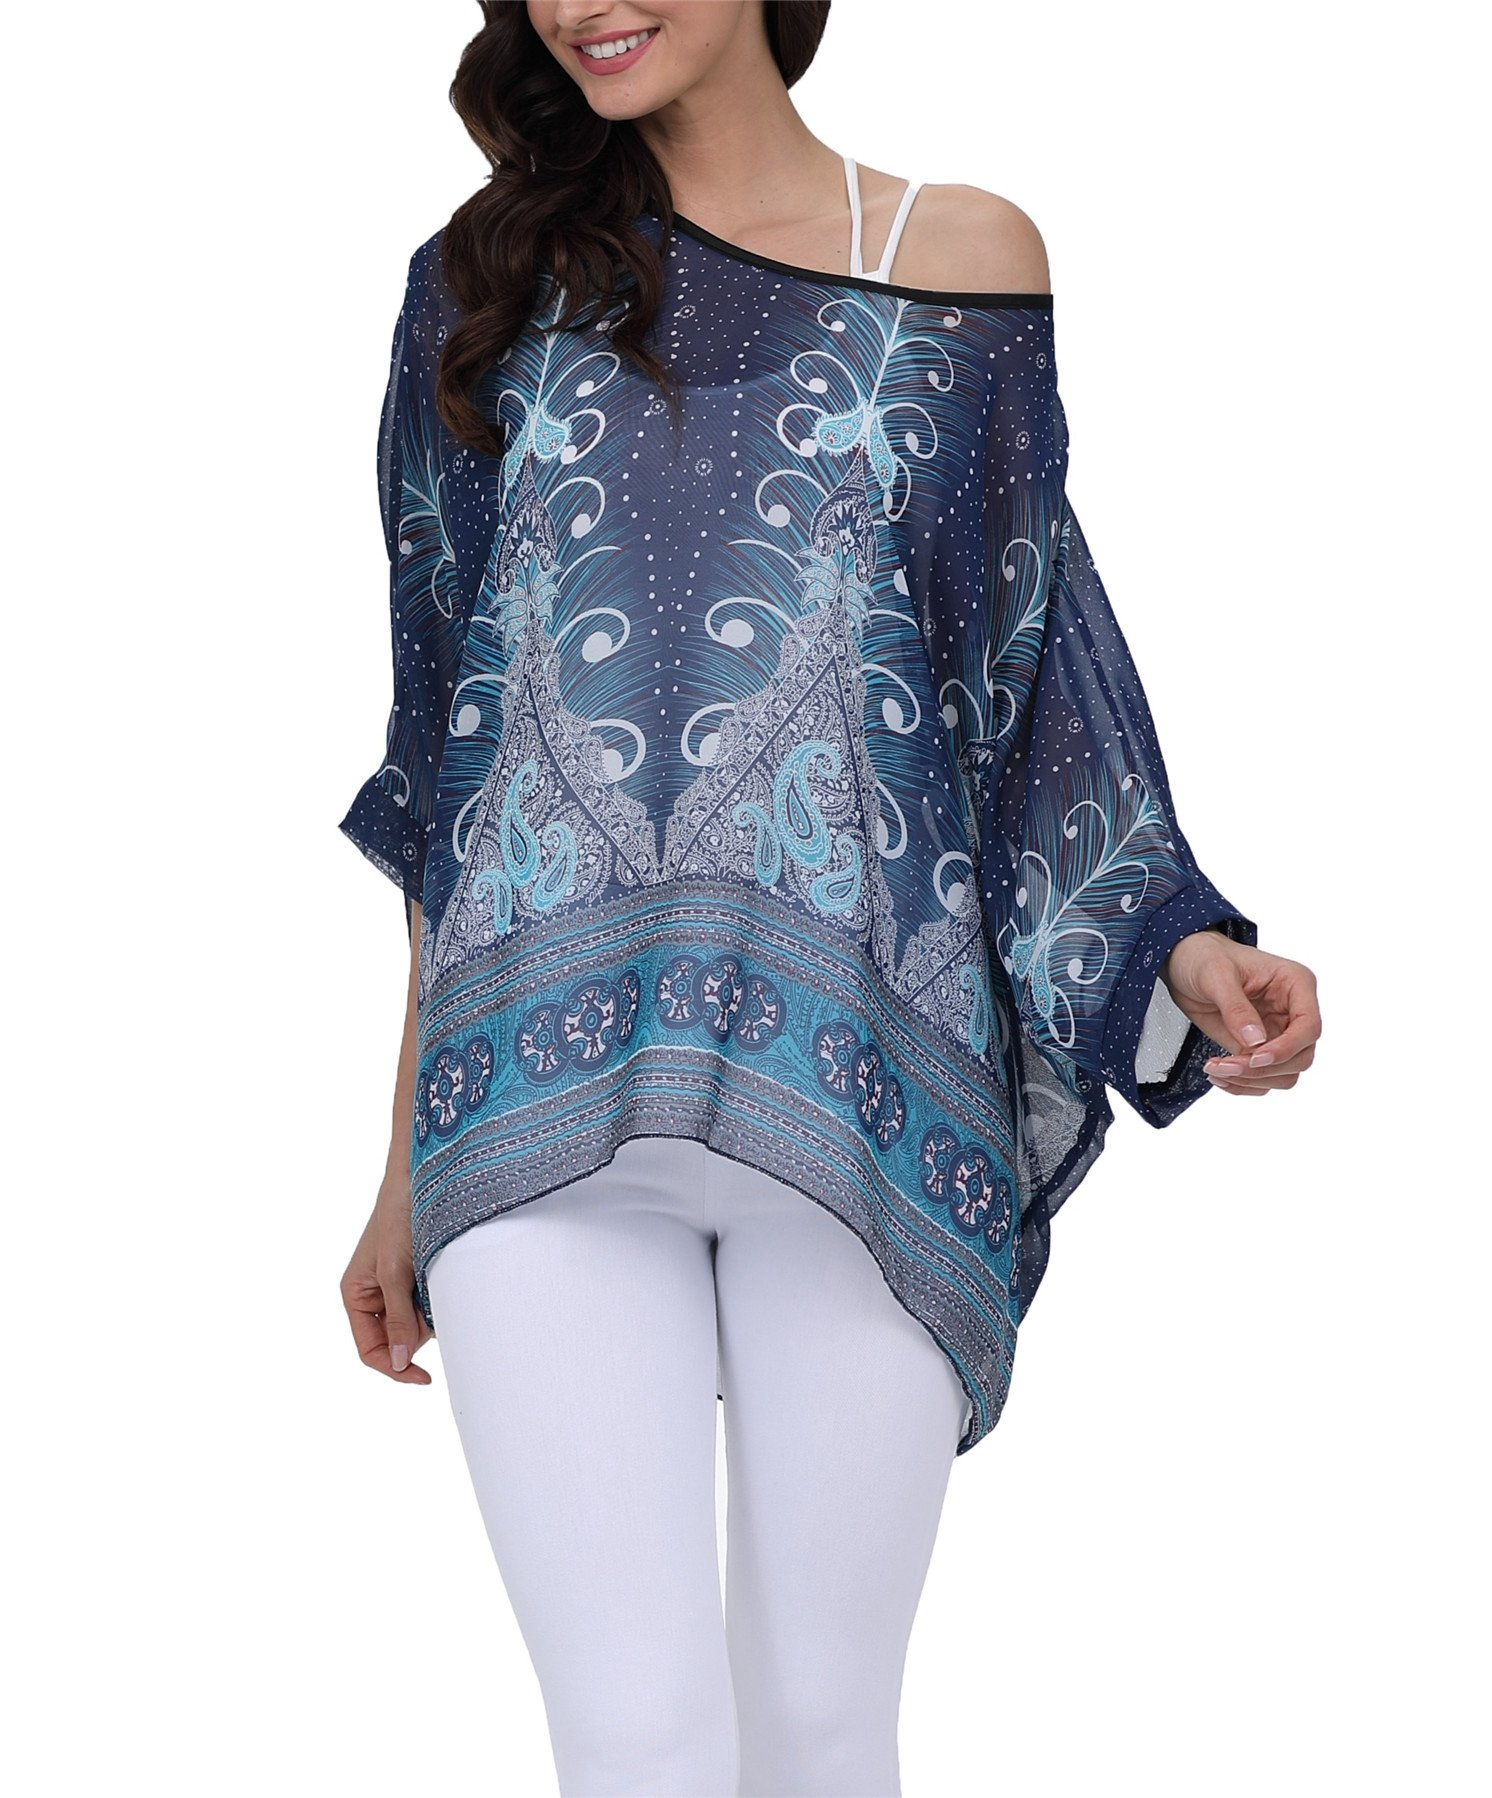 Vanbuy Women Summer Floral Printed Batwing Sleeve Top Chiffon Poncho Casual Loose Blouse Z91-4295